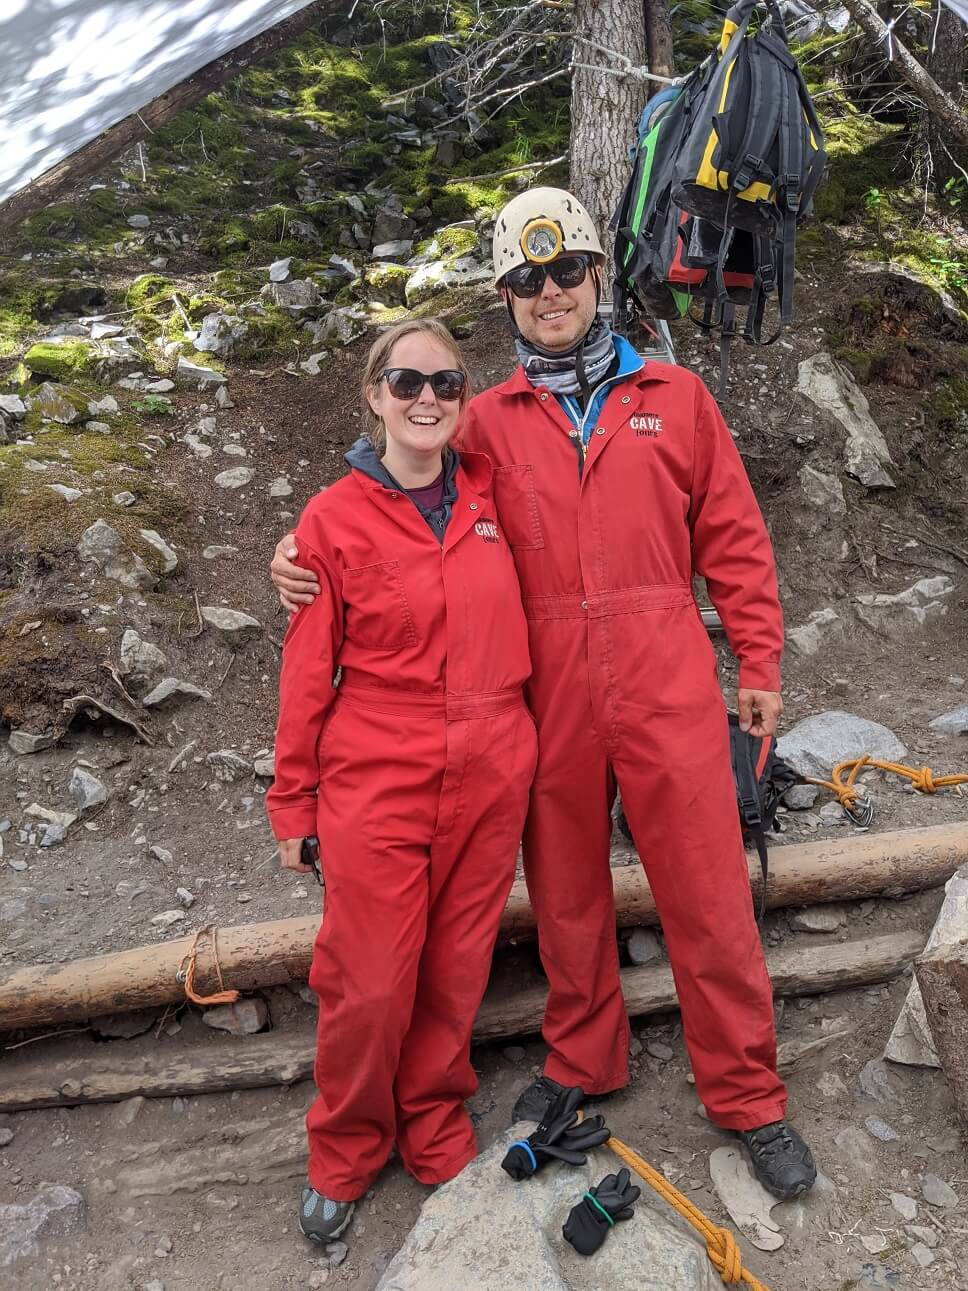 JR and Gemma standing together in red overalls smiling at camera, ready to start caving